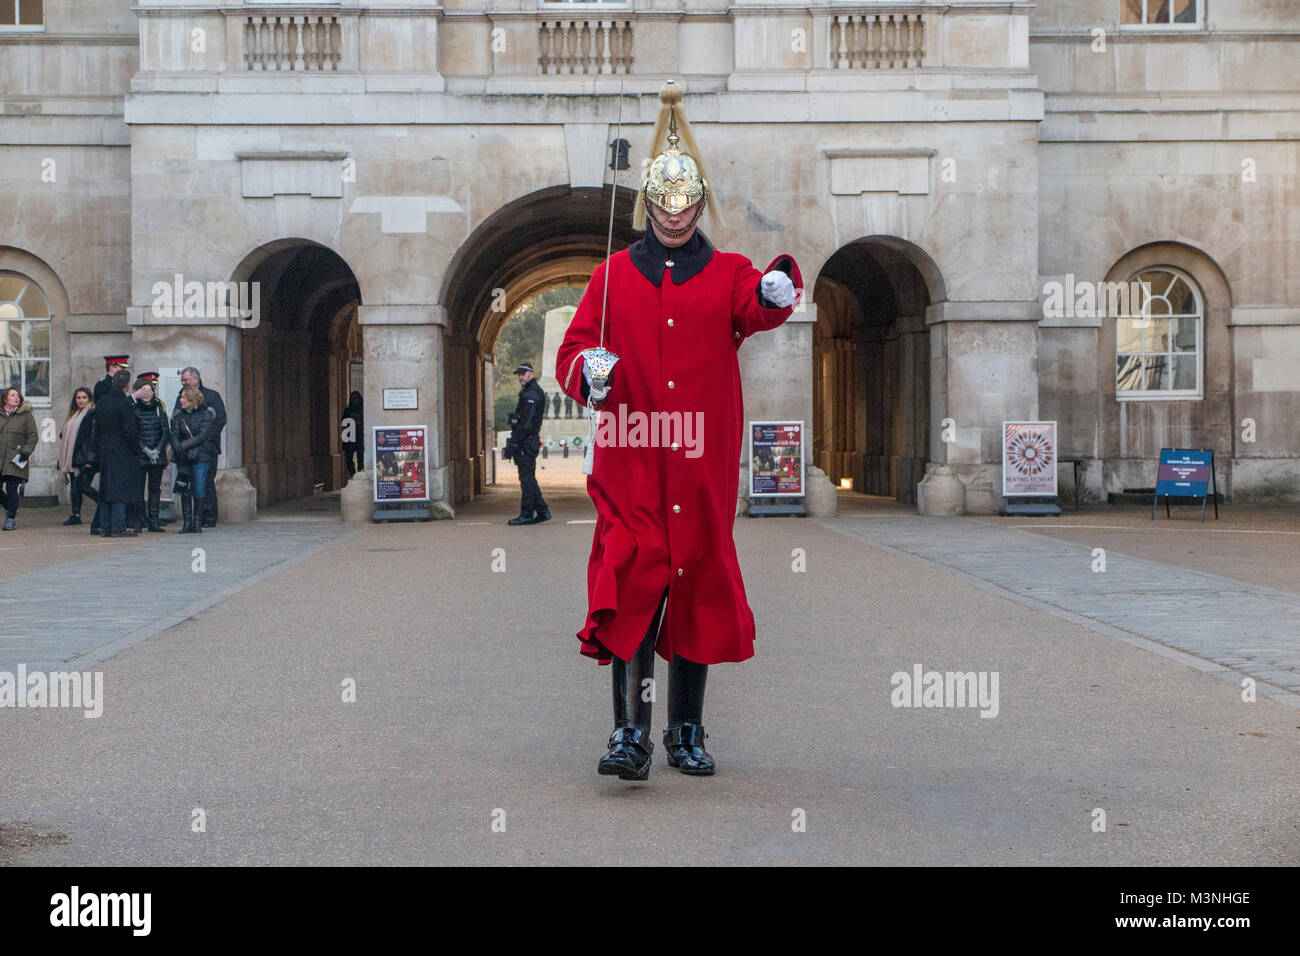 Horseguards on parade - Stock Image